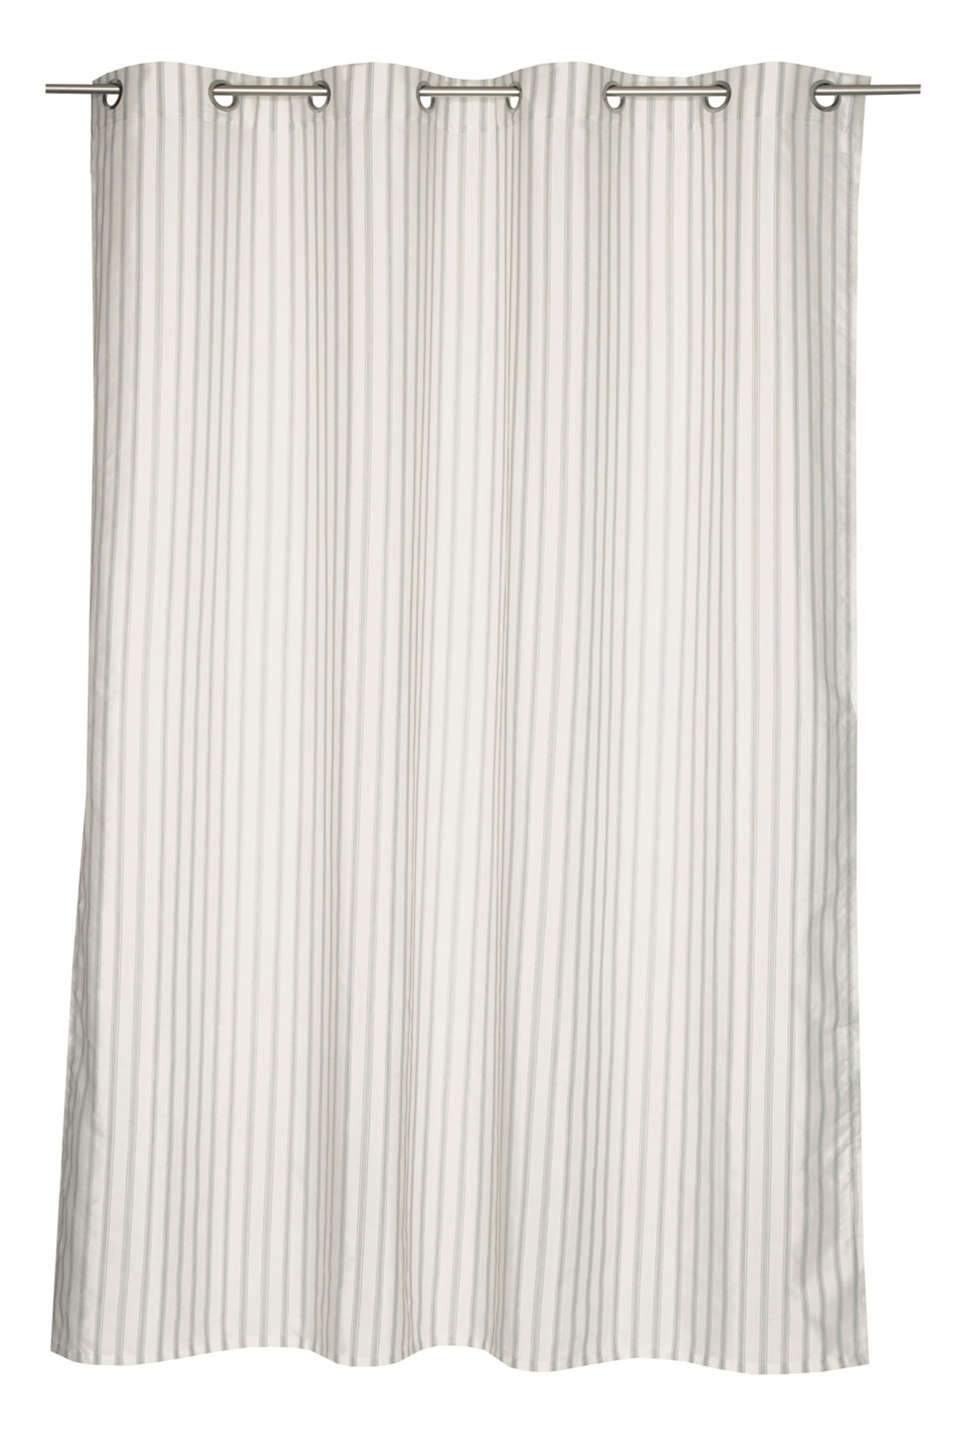 Eyelet curtain with textured stripes and linen, GREY-BEIGE, detail image number 0